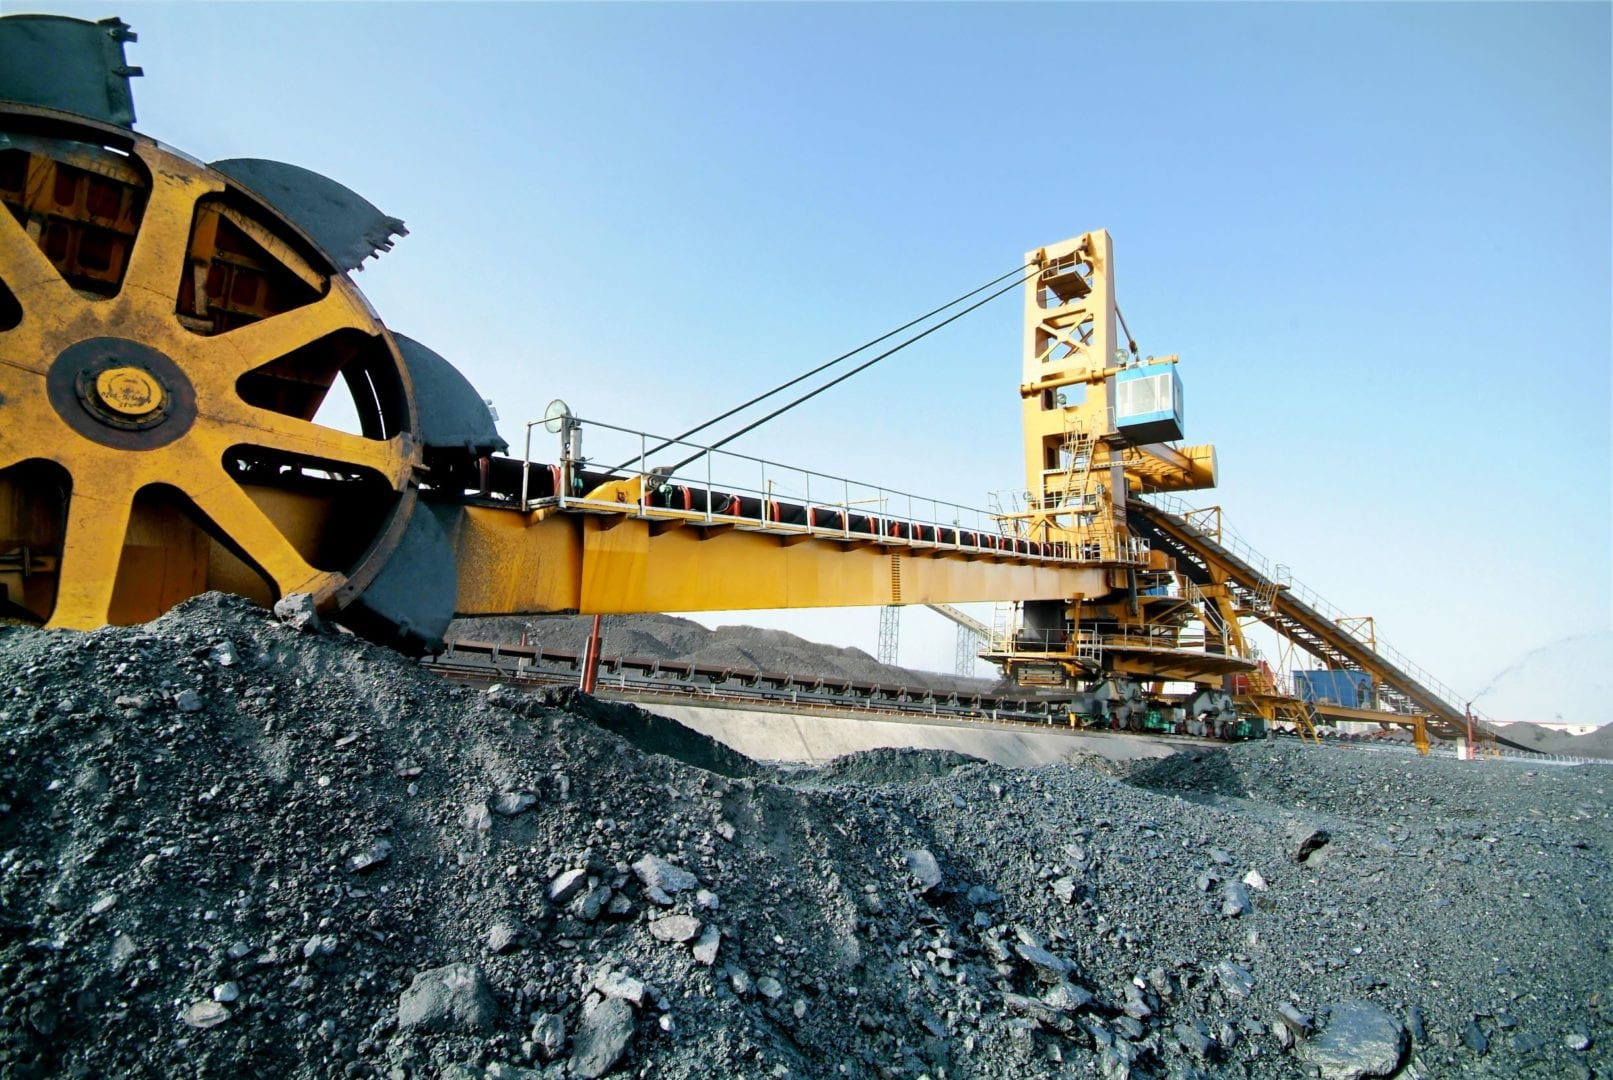 Mining automation market size will grow $3.31bn by 2023